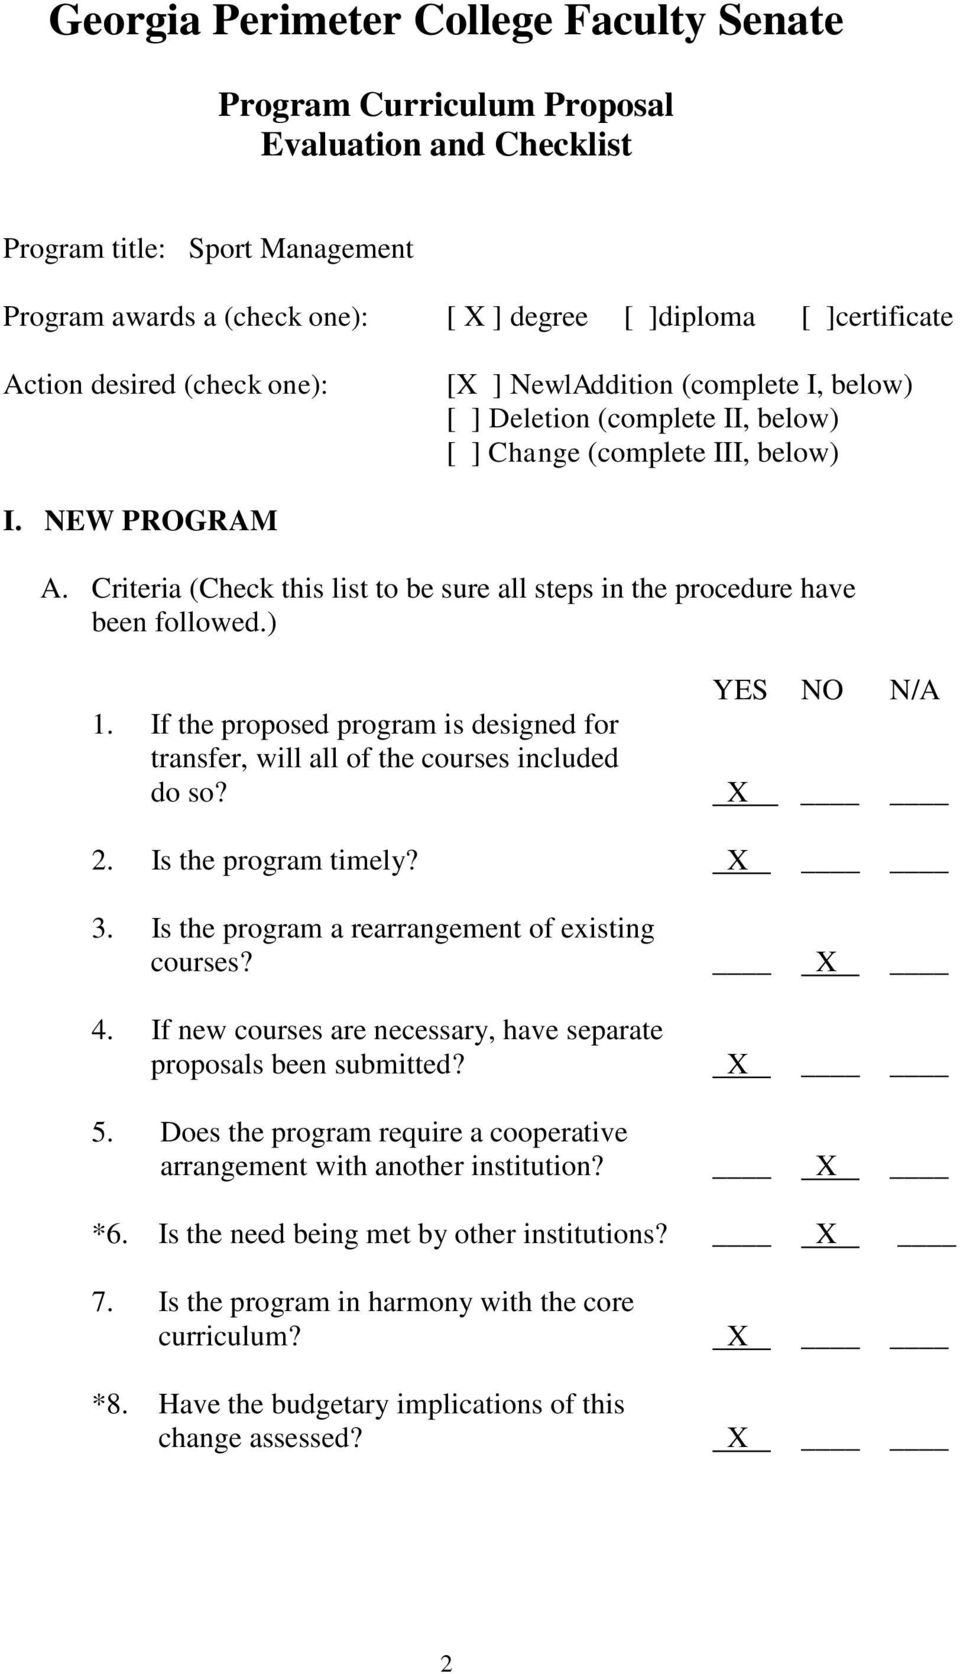 Criteria (Check this list to be sure all steps in the procedure have been followed.) YES NO N/A 1. If the proposed program is designed for transfer, will all of the courses included do so? X 2.